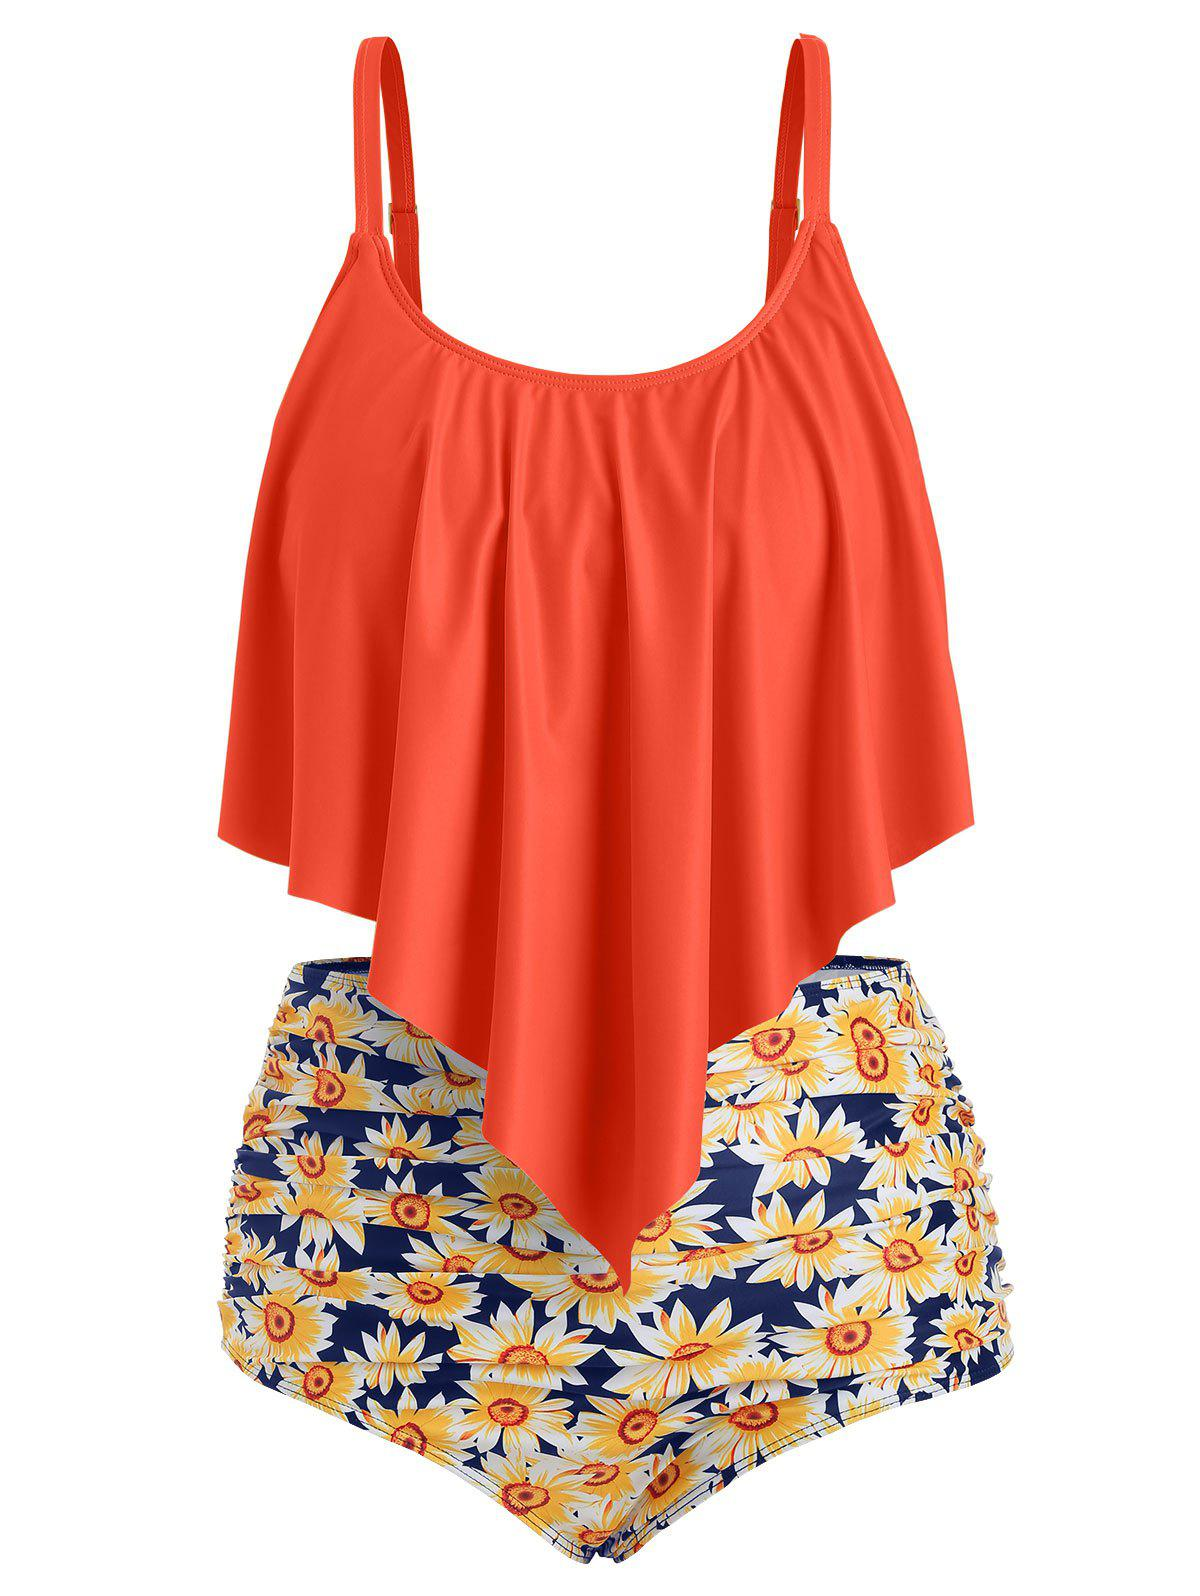 New Plus Size Overlay Sunflower Print Ruched Bikini Set